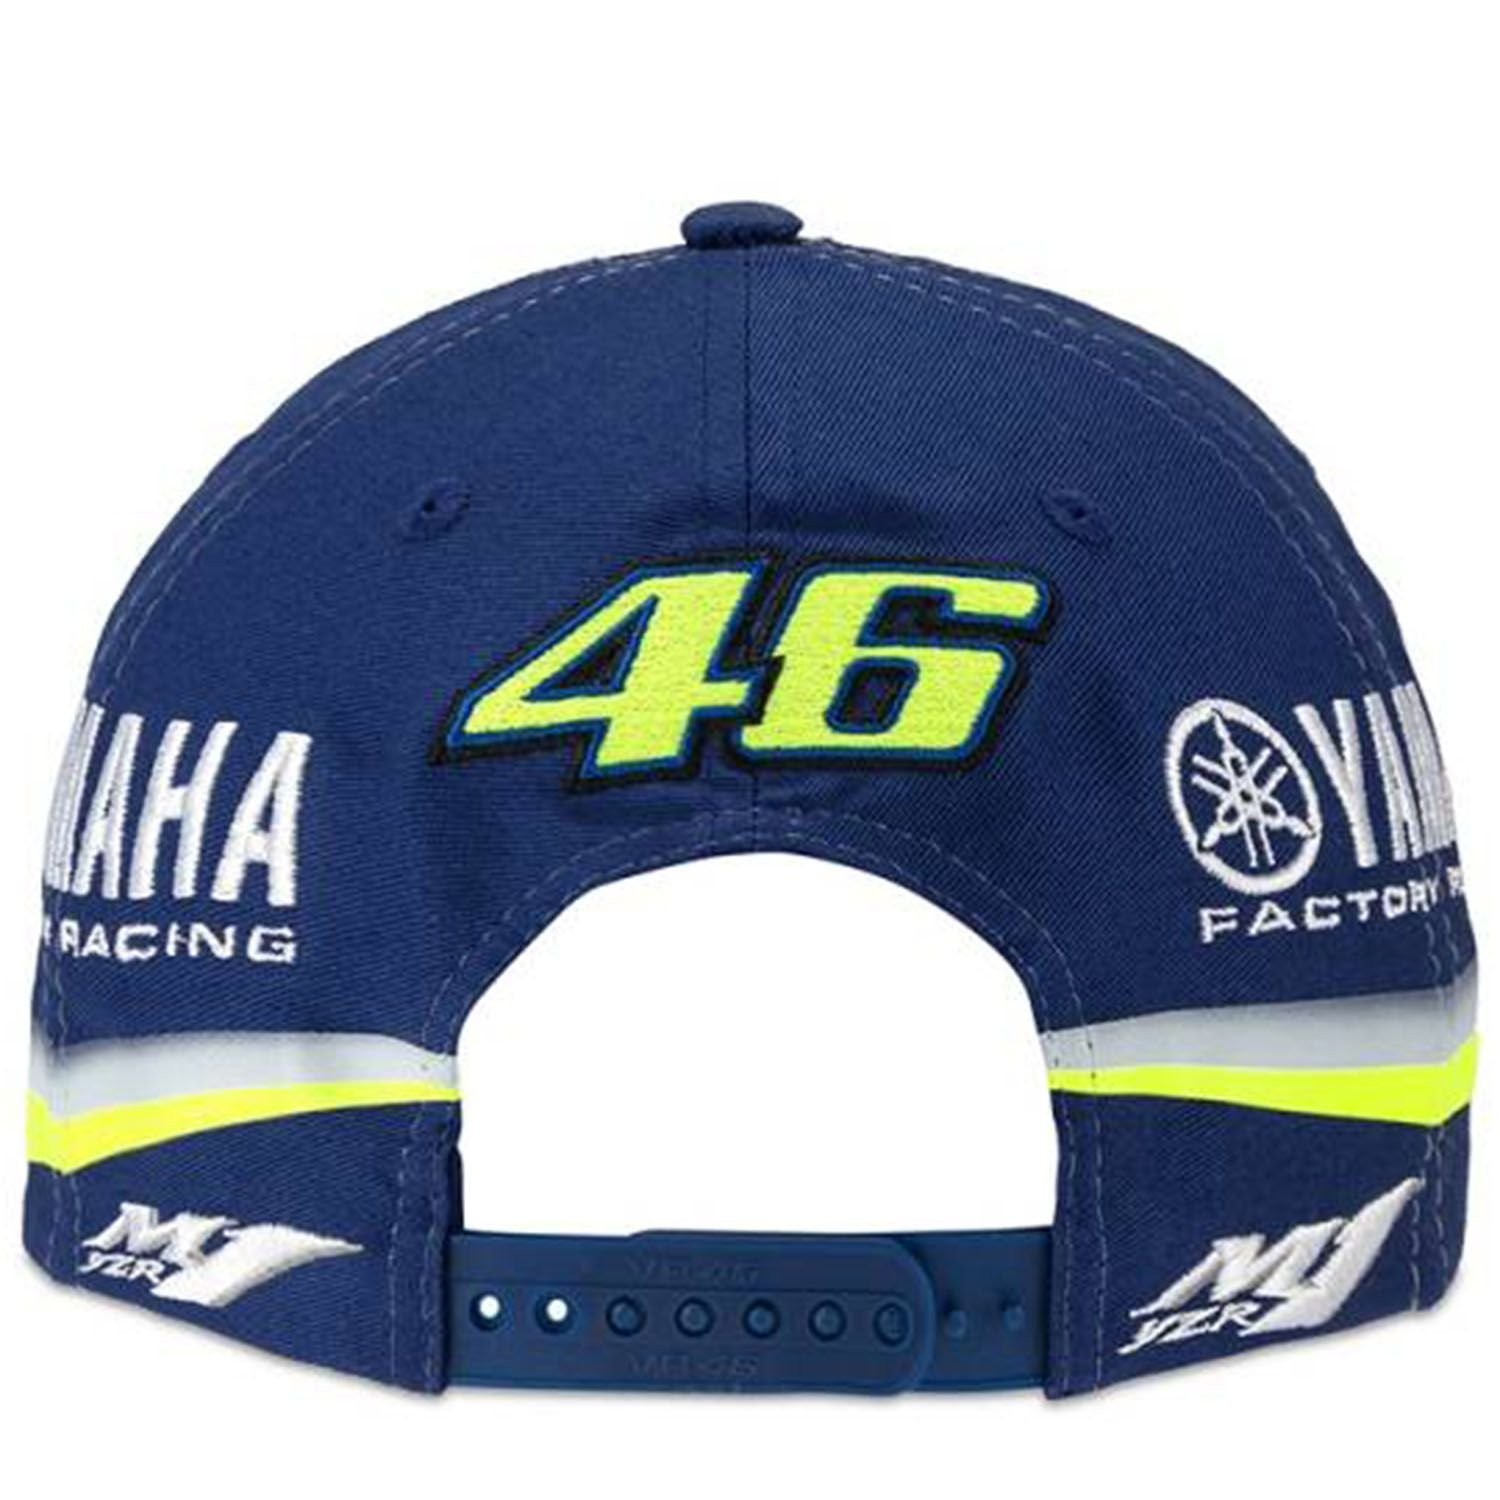 VALENTINO ROSSI /® Casquette VR46 Moto GP M1 Yamaha Factory Racing Team Ydmca313609 Officiel 2018 Licence Yamaha Distributeur